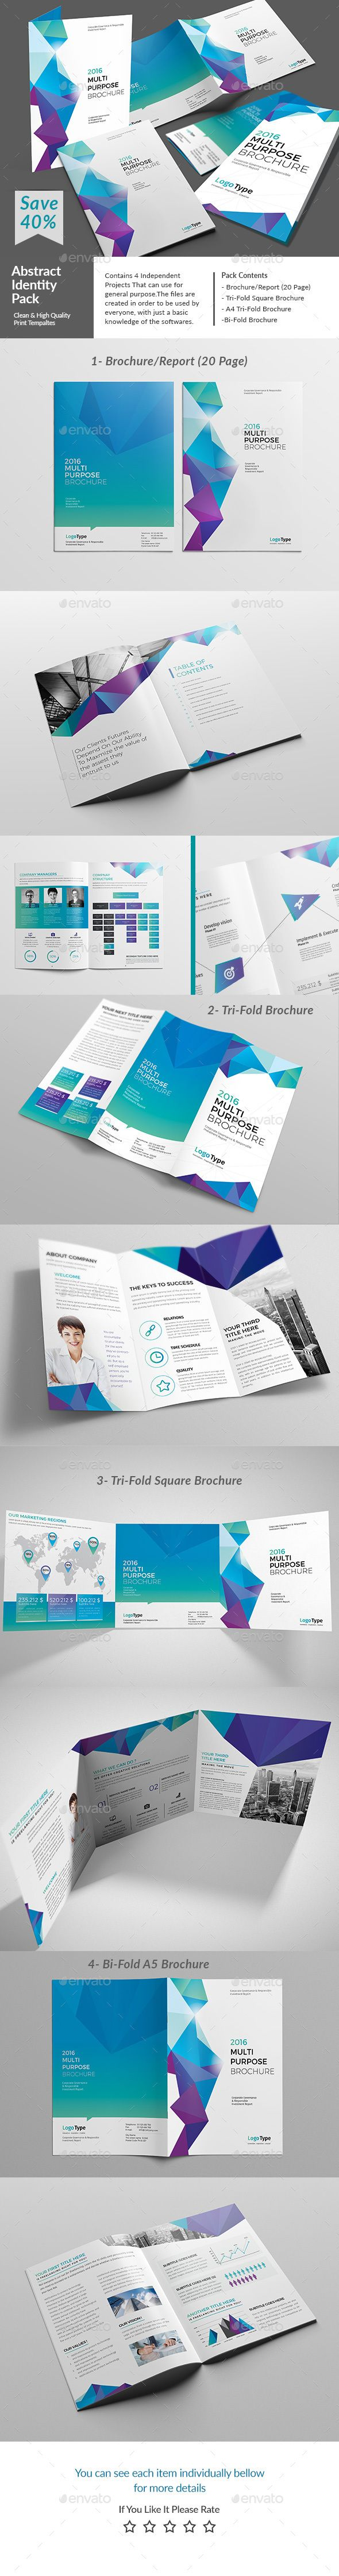 A4 & US letter Report Template PSD, InDesign INDD. Download here: http://graphicriver.net/item/abstract-print-pack-/14762944?ref=ksioks